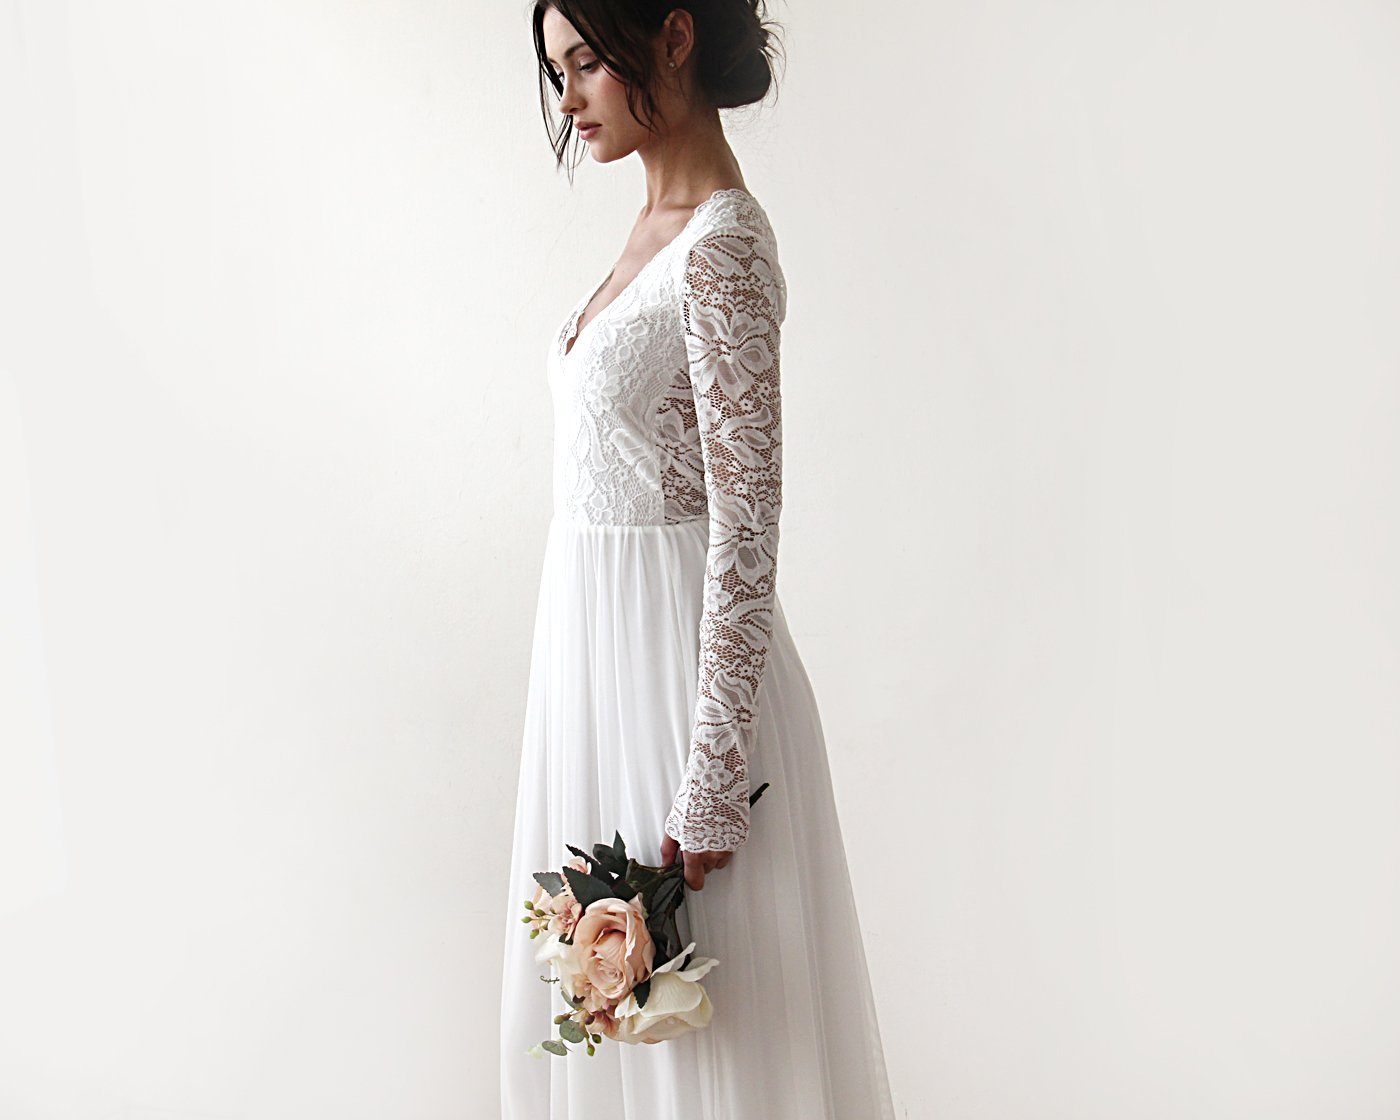 Boho Style wedding dress, Lace V neck bridal gown, Lace and Chiffon Dress, Lightweight wedding dress, Comfortable wedding dress 1187 - Blushfashion